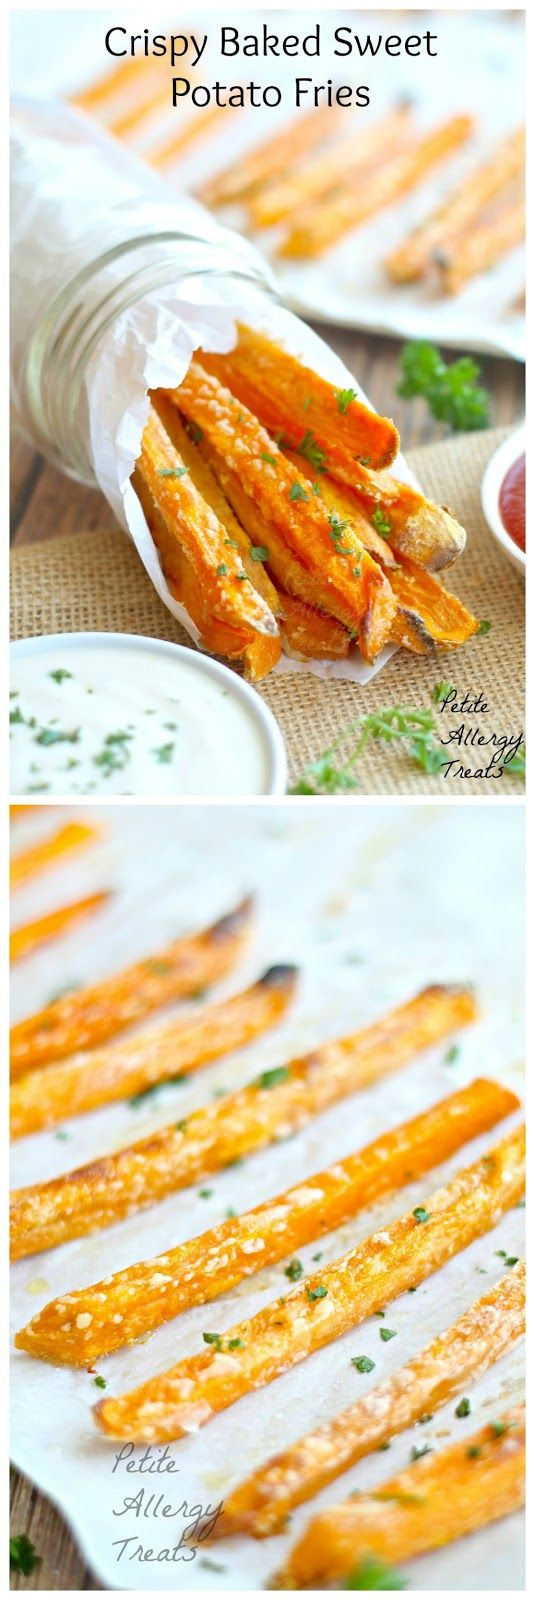 Sweet Potato Fries Crispy Baked- The BEST baked sweet potato fries easy with minimal oil, gluten free